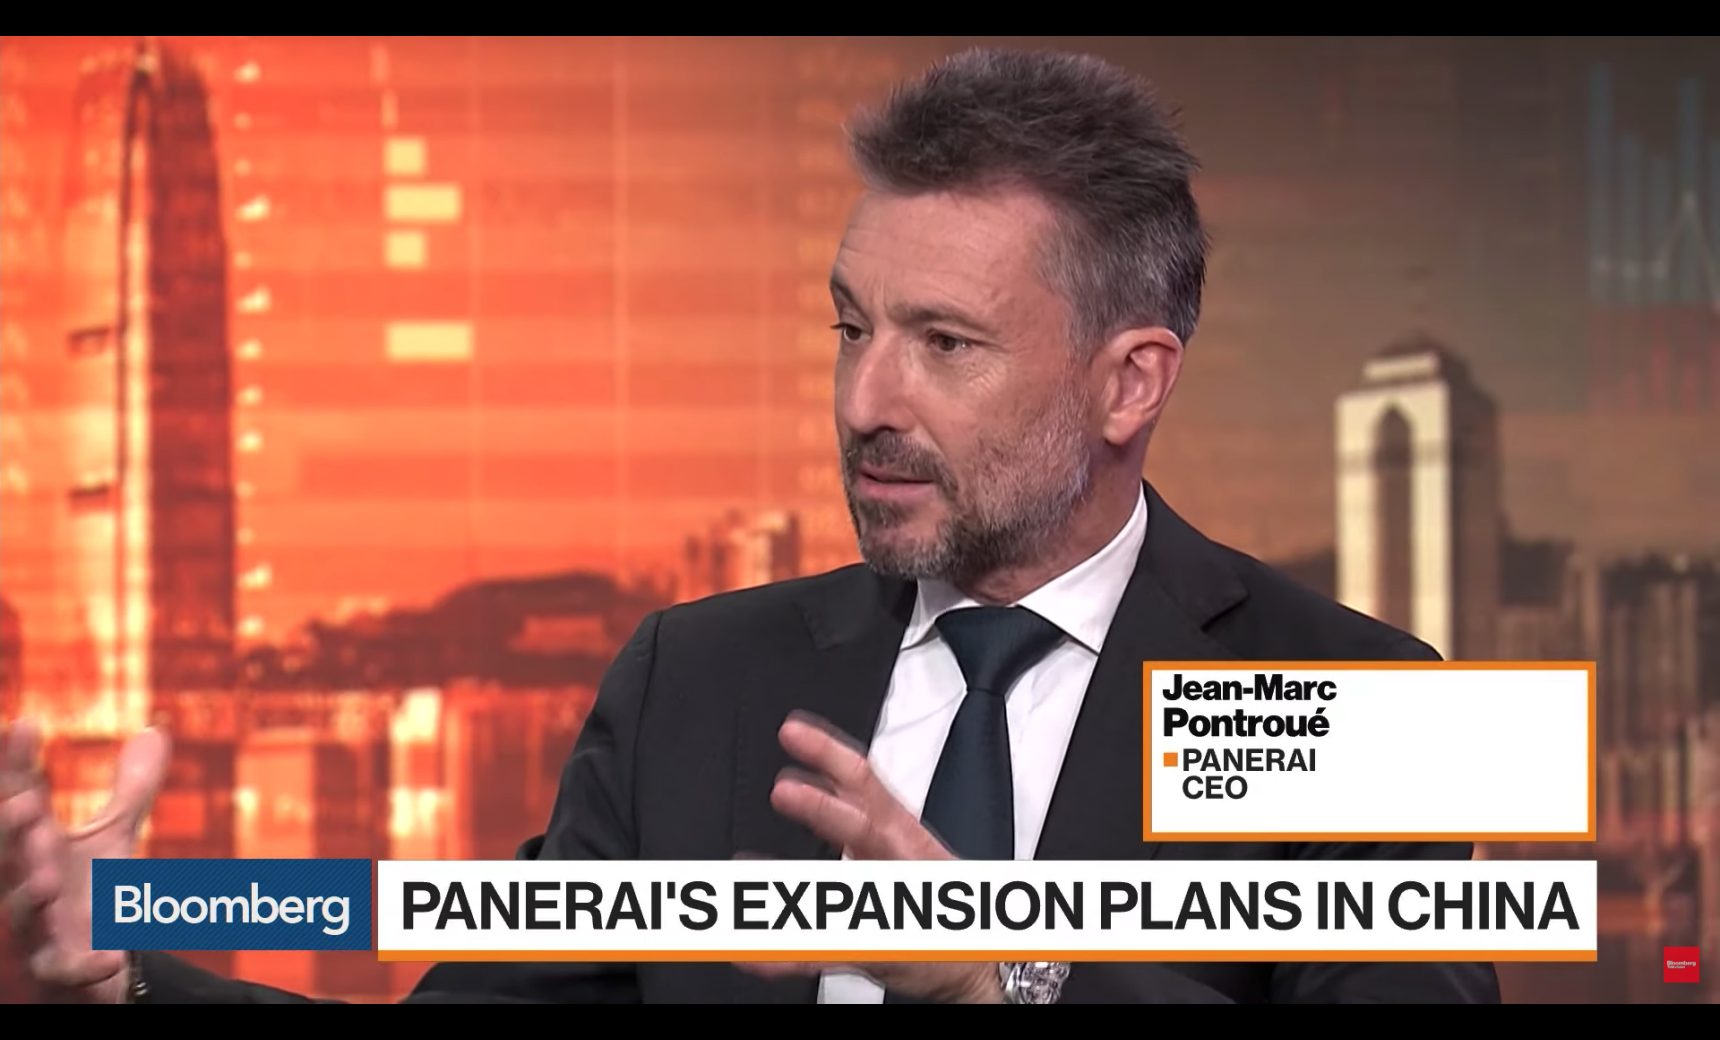 JEAN-MARC PONTROUÉ INTERVIEW ON BLOOMBERG TV HONG KONG